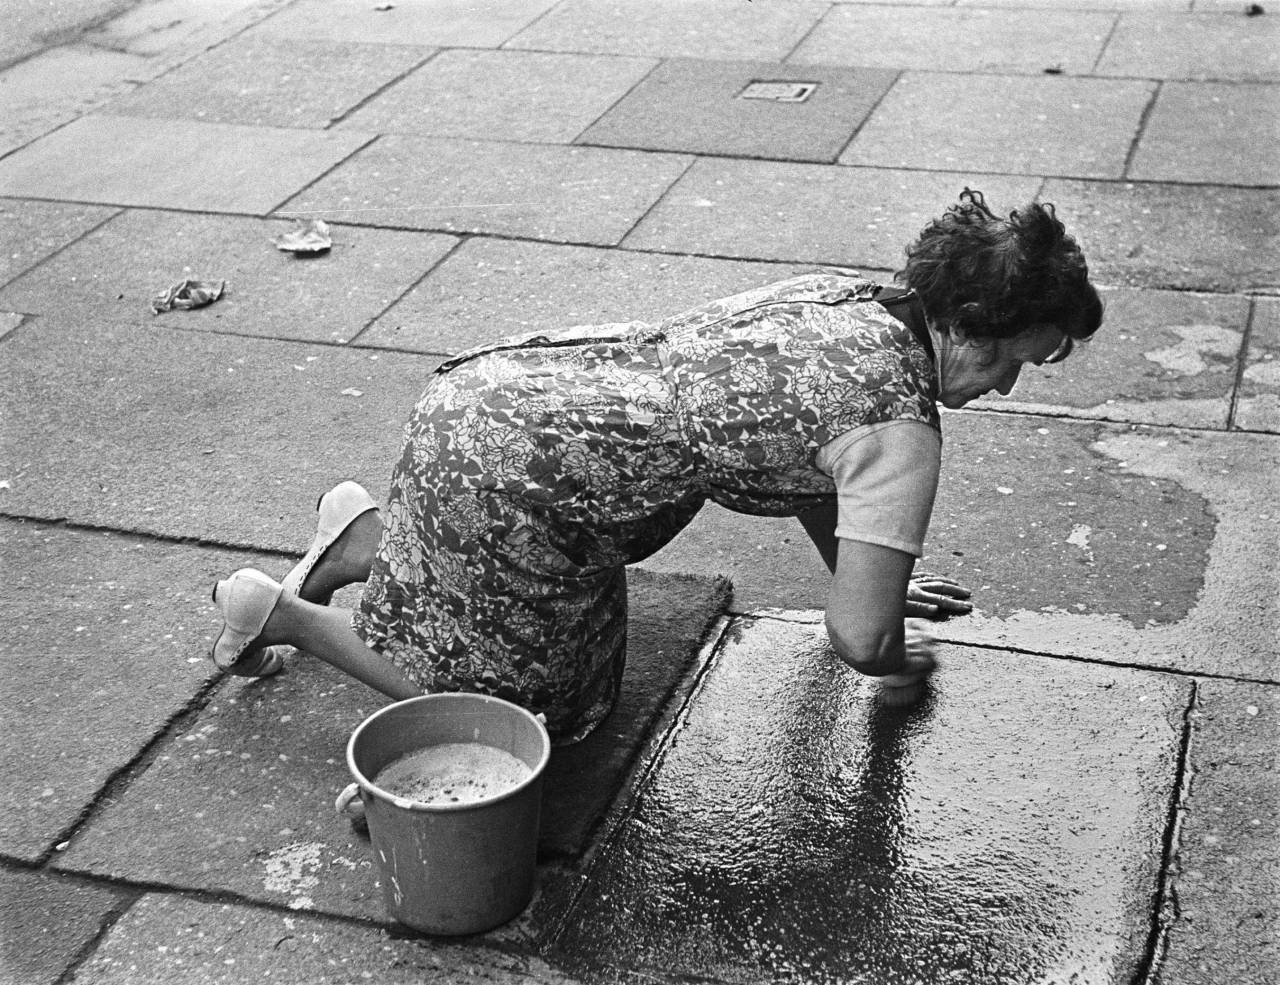 Cleaning the pavement outside my house Liverpool 8 1969